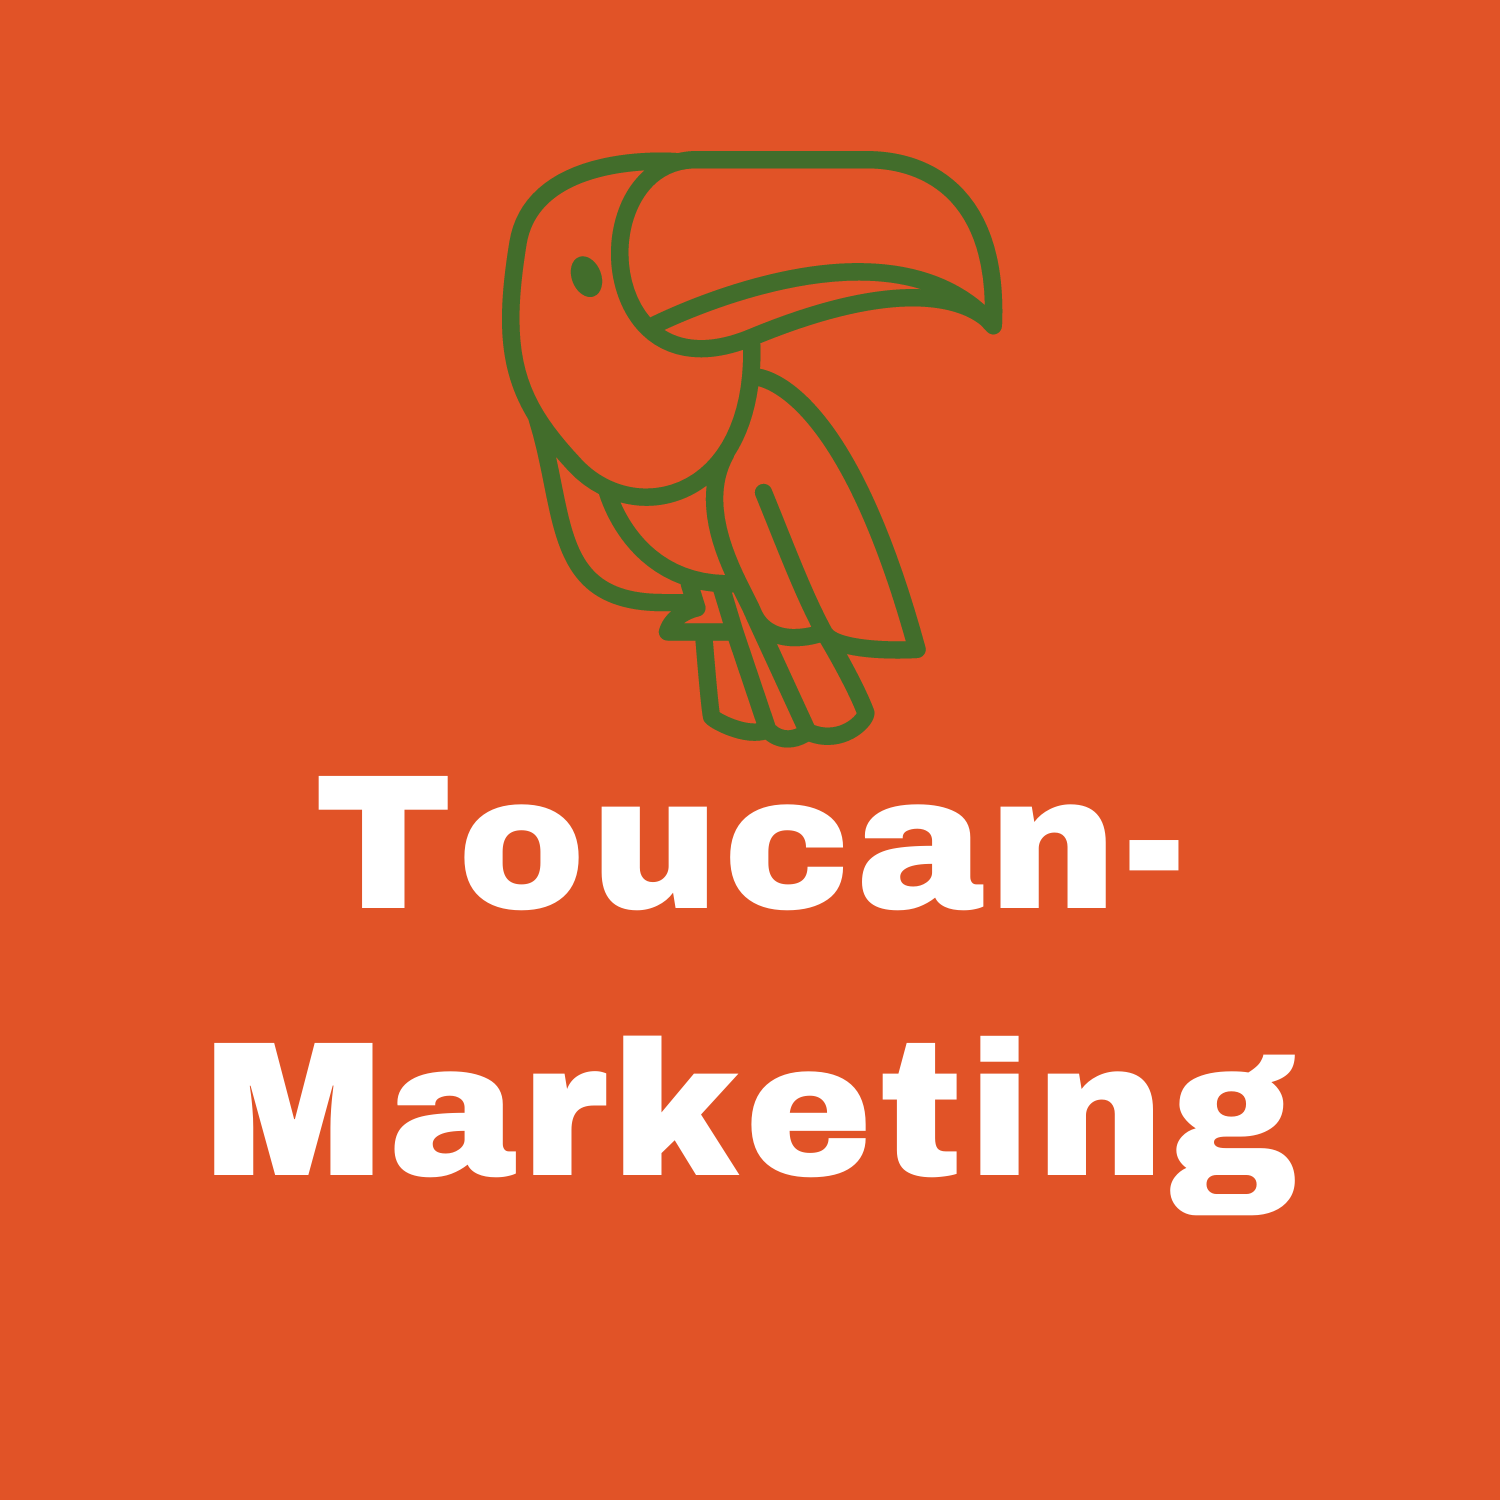 Toucan Marketing